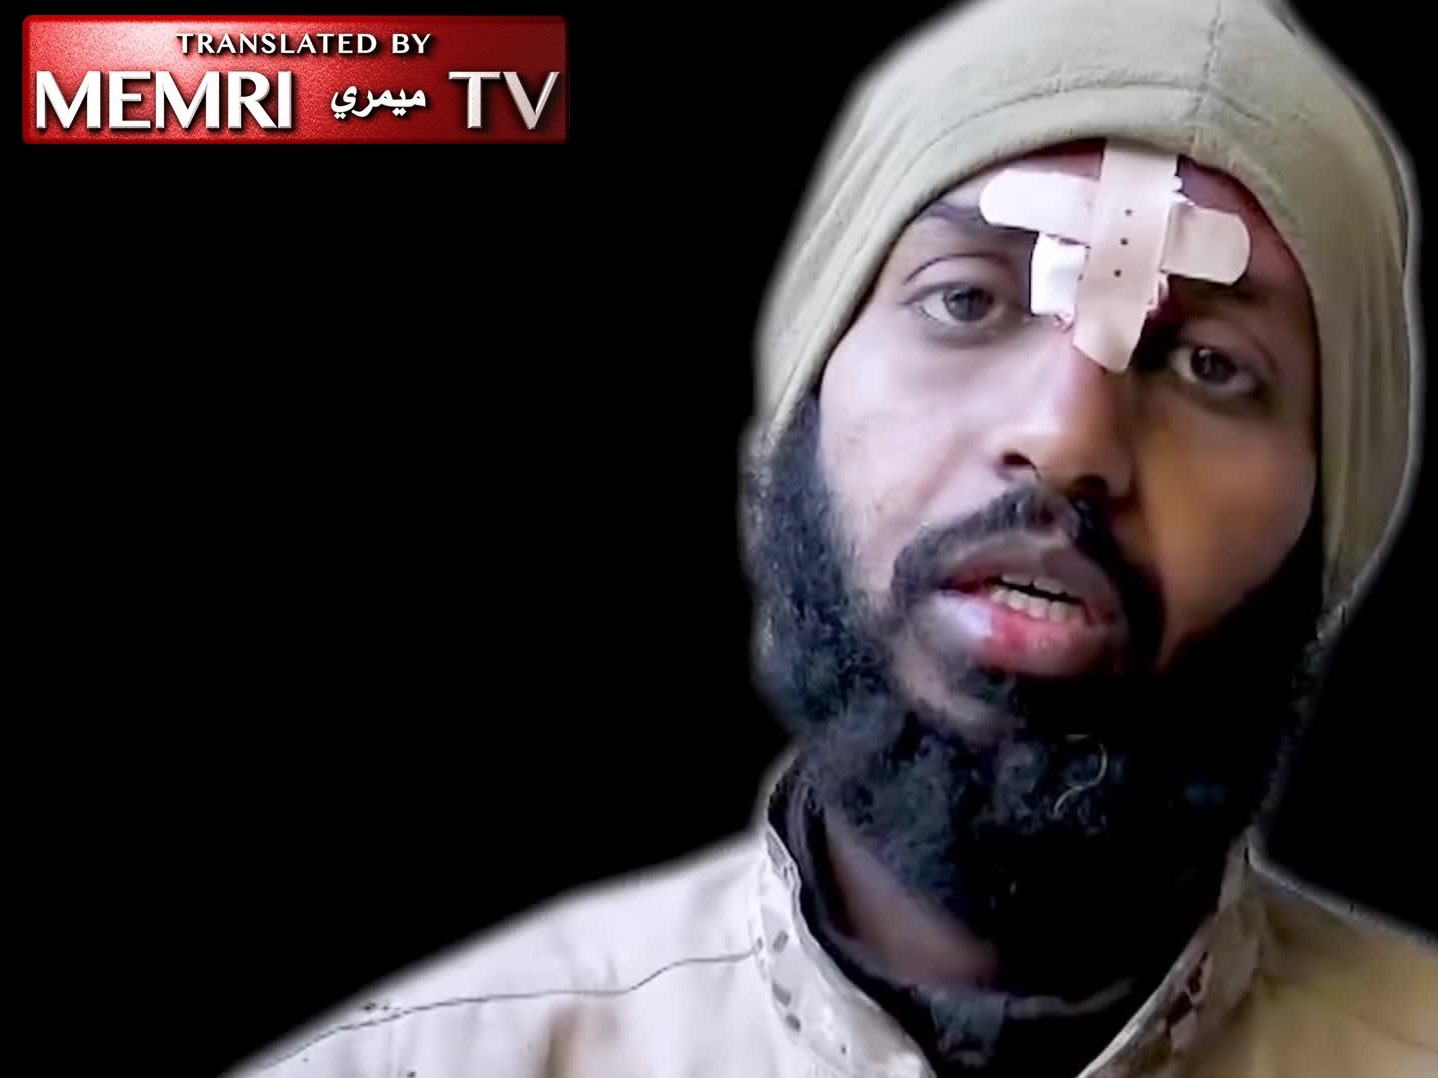 Abu Ridwan, Canadian ISIS Media Operative Captured by Kurdish Forces, Describes His Jihadi Activity